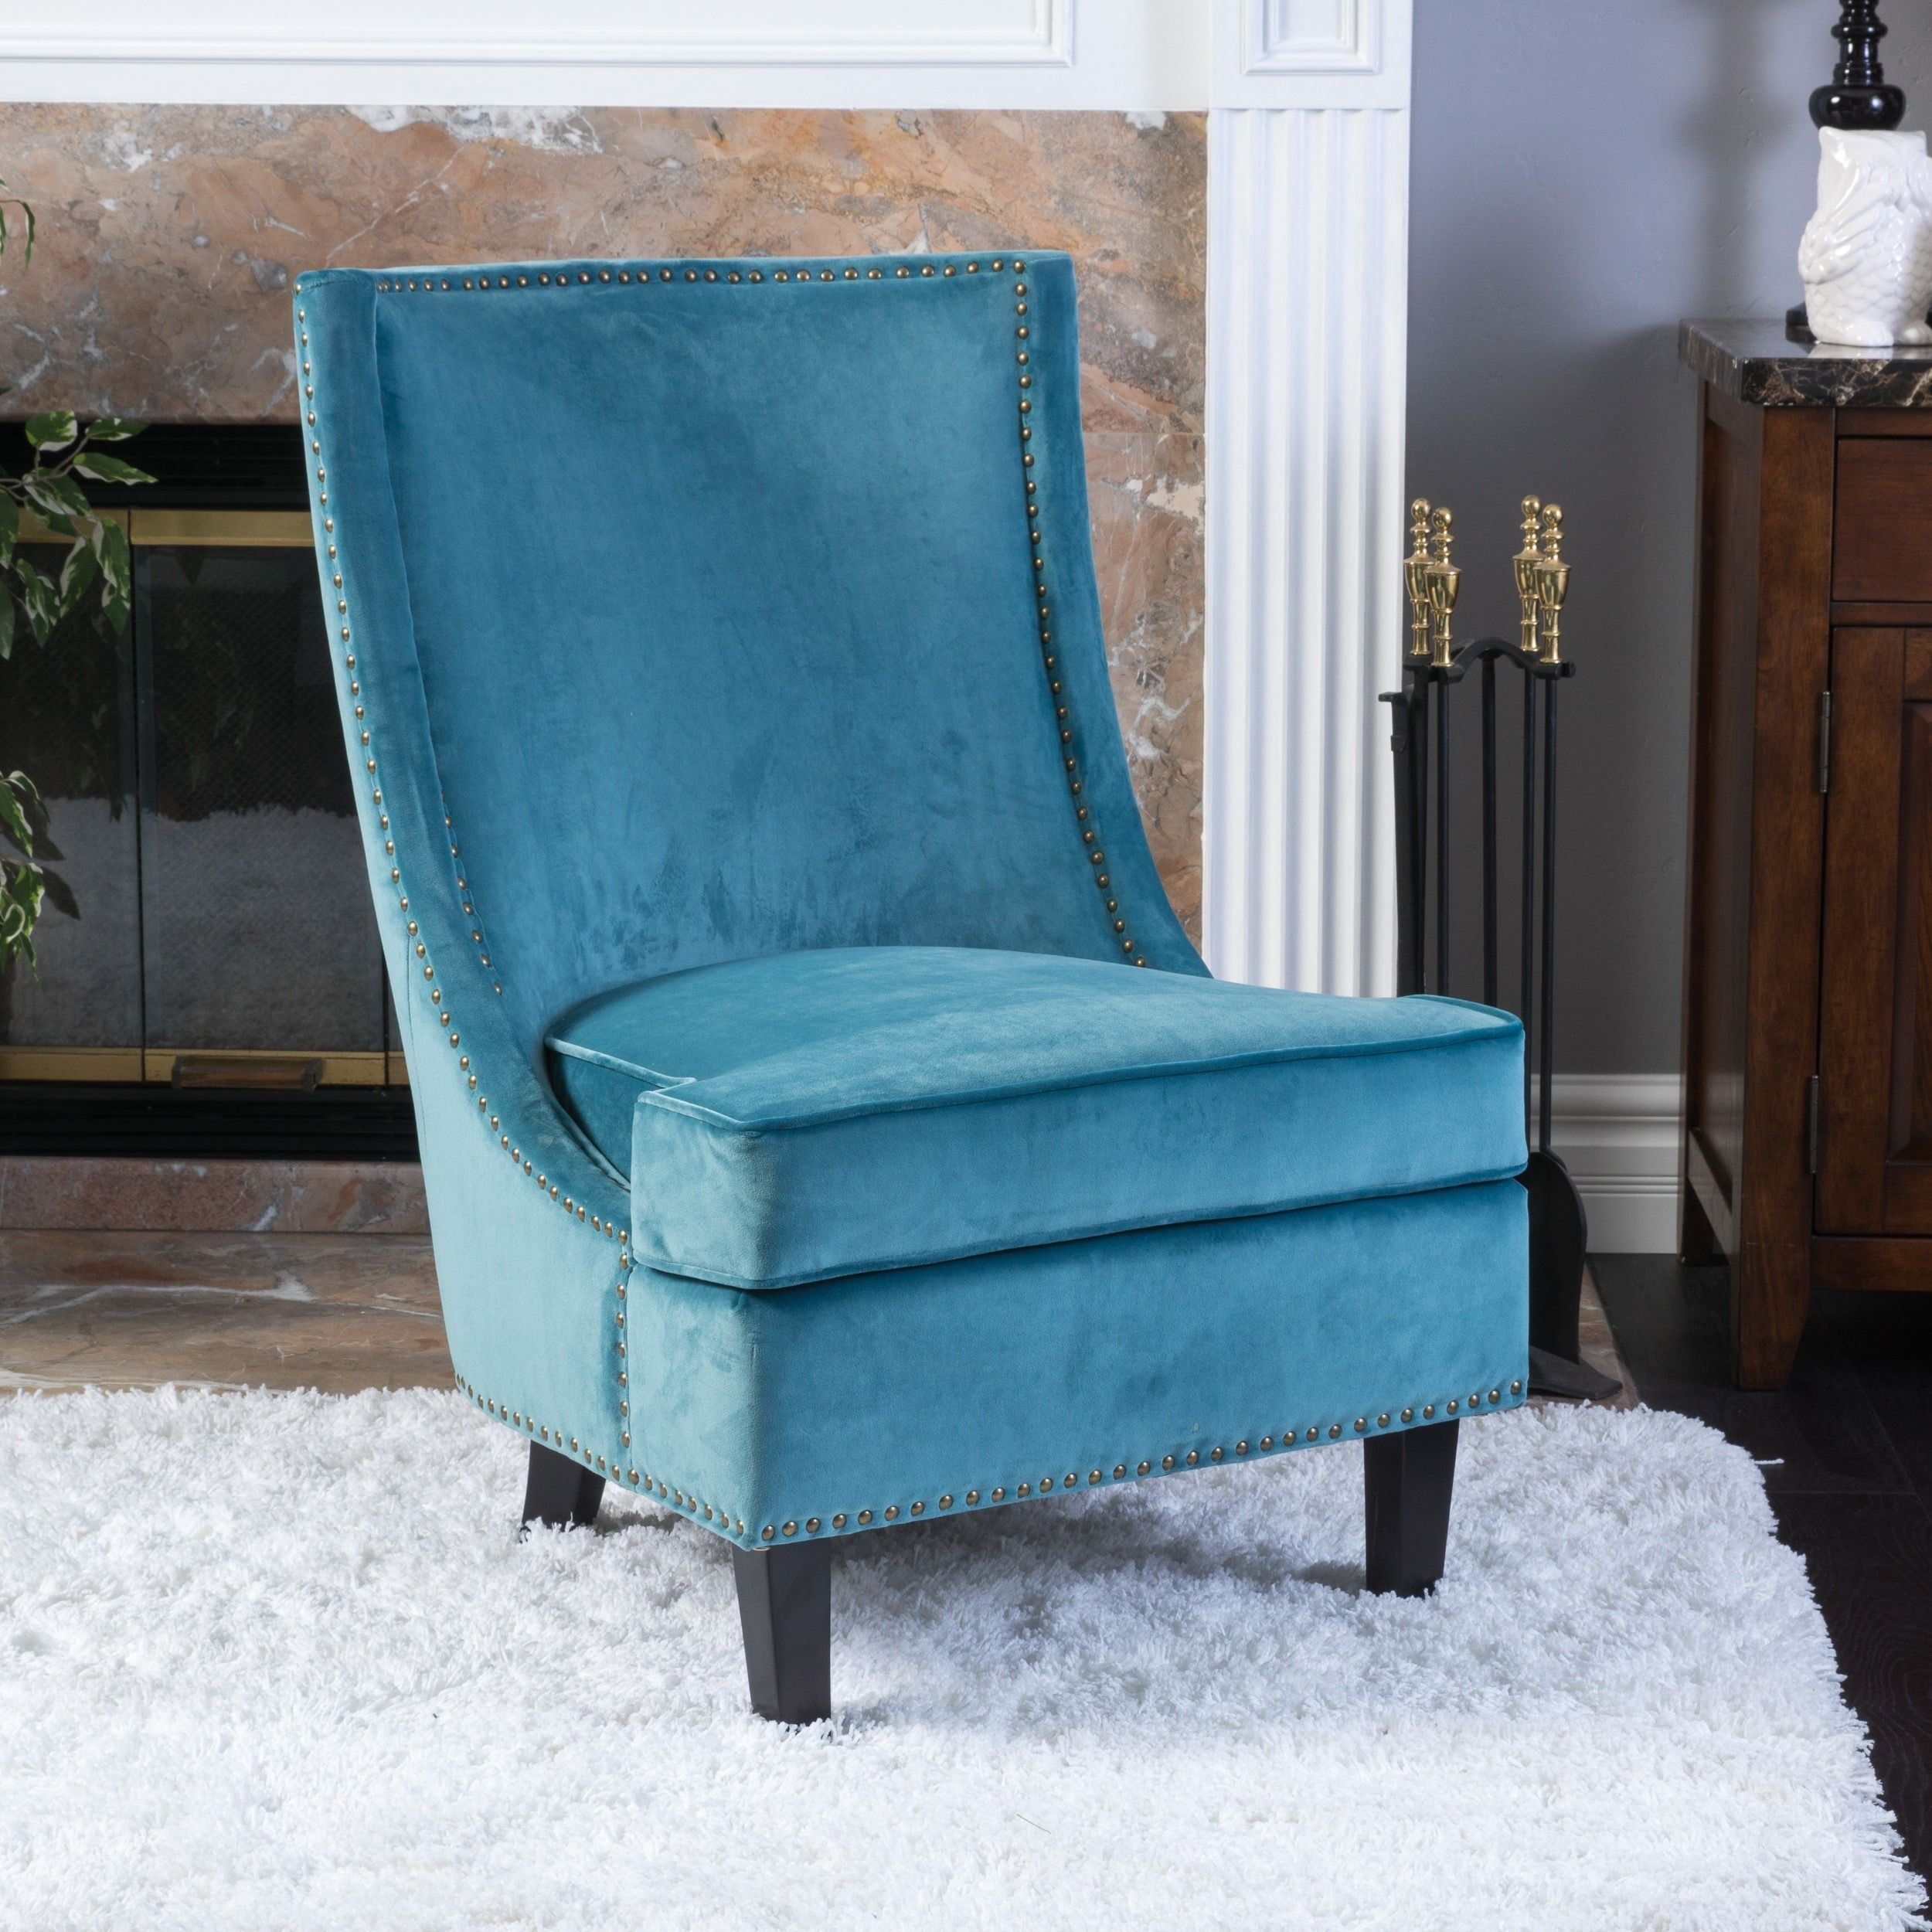 Single Living Room Chairs. Living Room Chairs  Create an inviting atmosphere with new living room chairs Decorate your